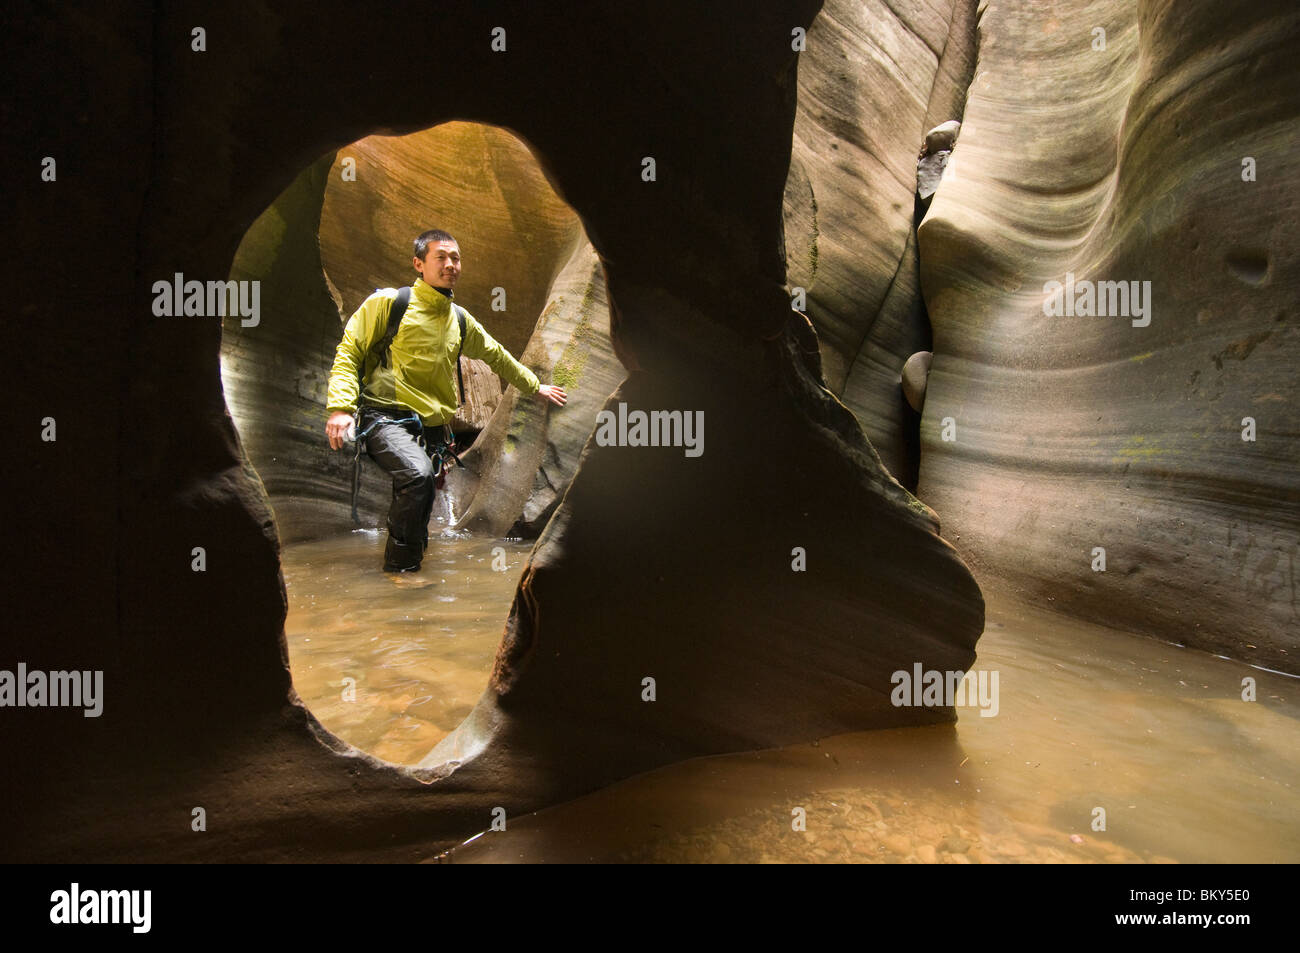 An Asian man canyoneering through a watery canyon in Zion National Park, Springdale, Utah. - Stock Image